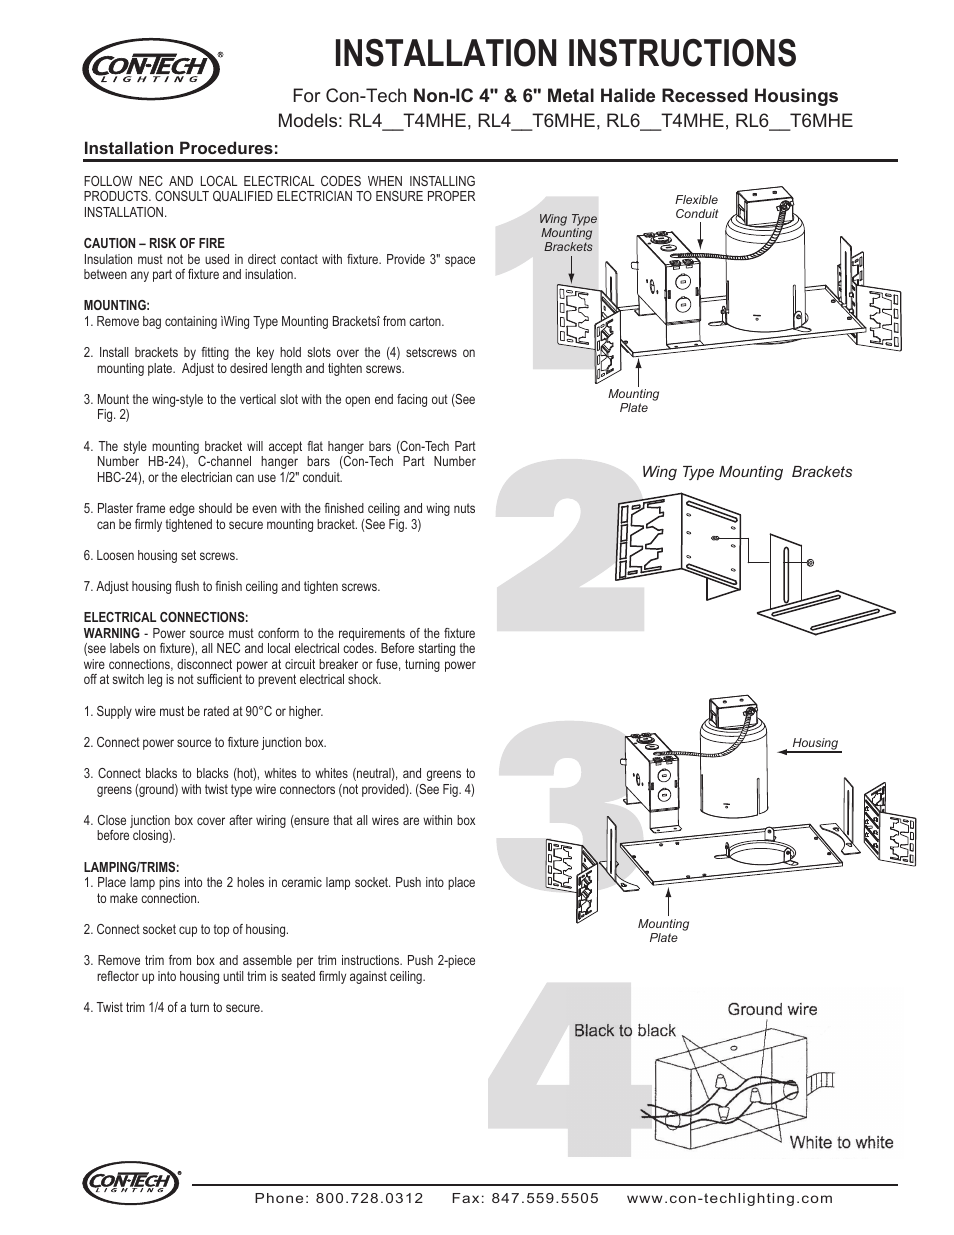 ConTech Lighting RL420T6MHE User Manual | 1 page | Also for